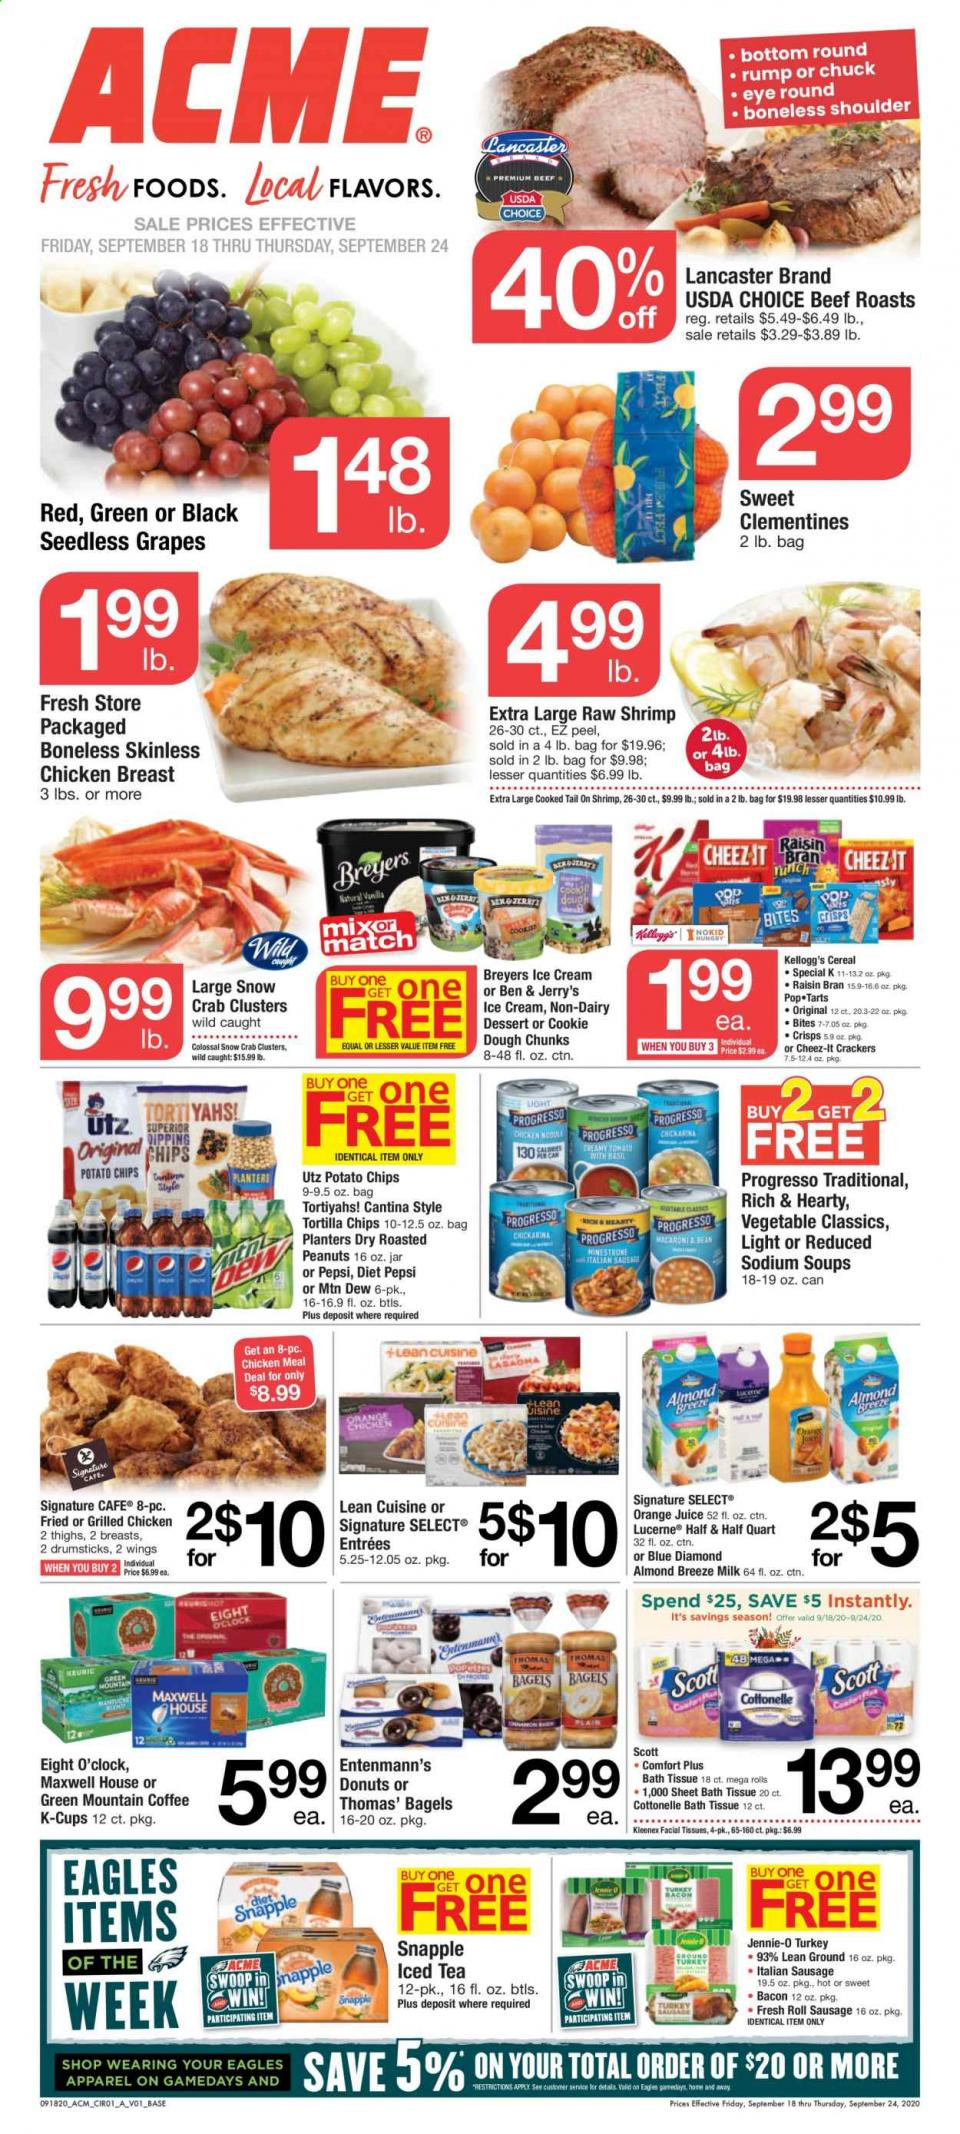 Acme Weekly September Ad valid from Sep 18 – 24, 2020